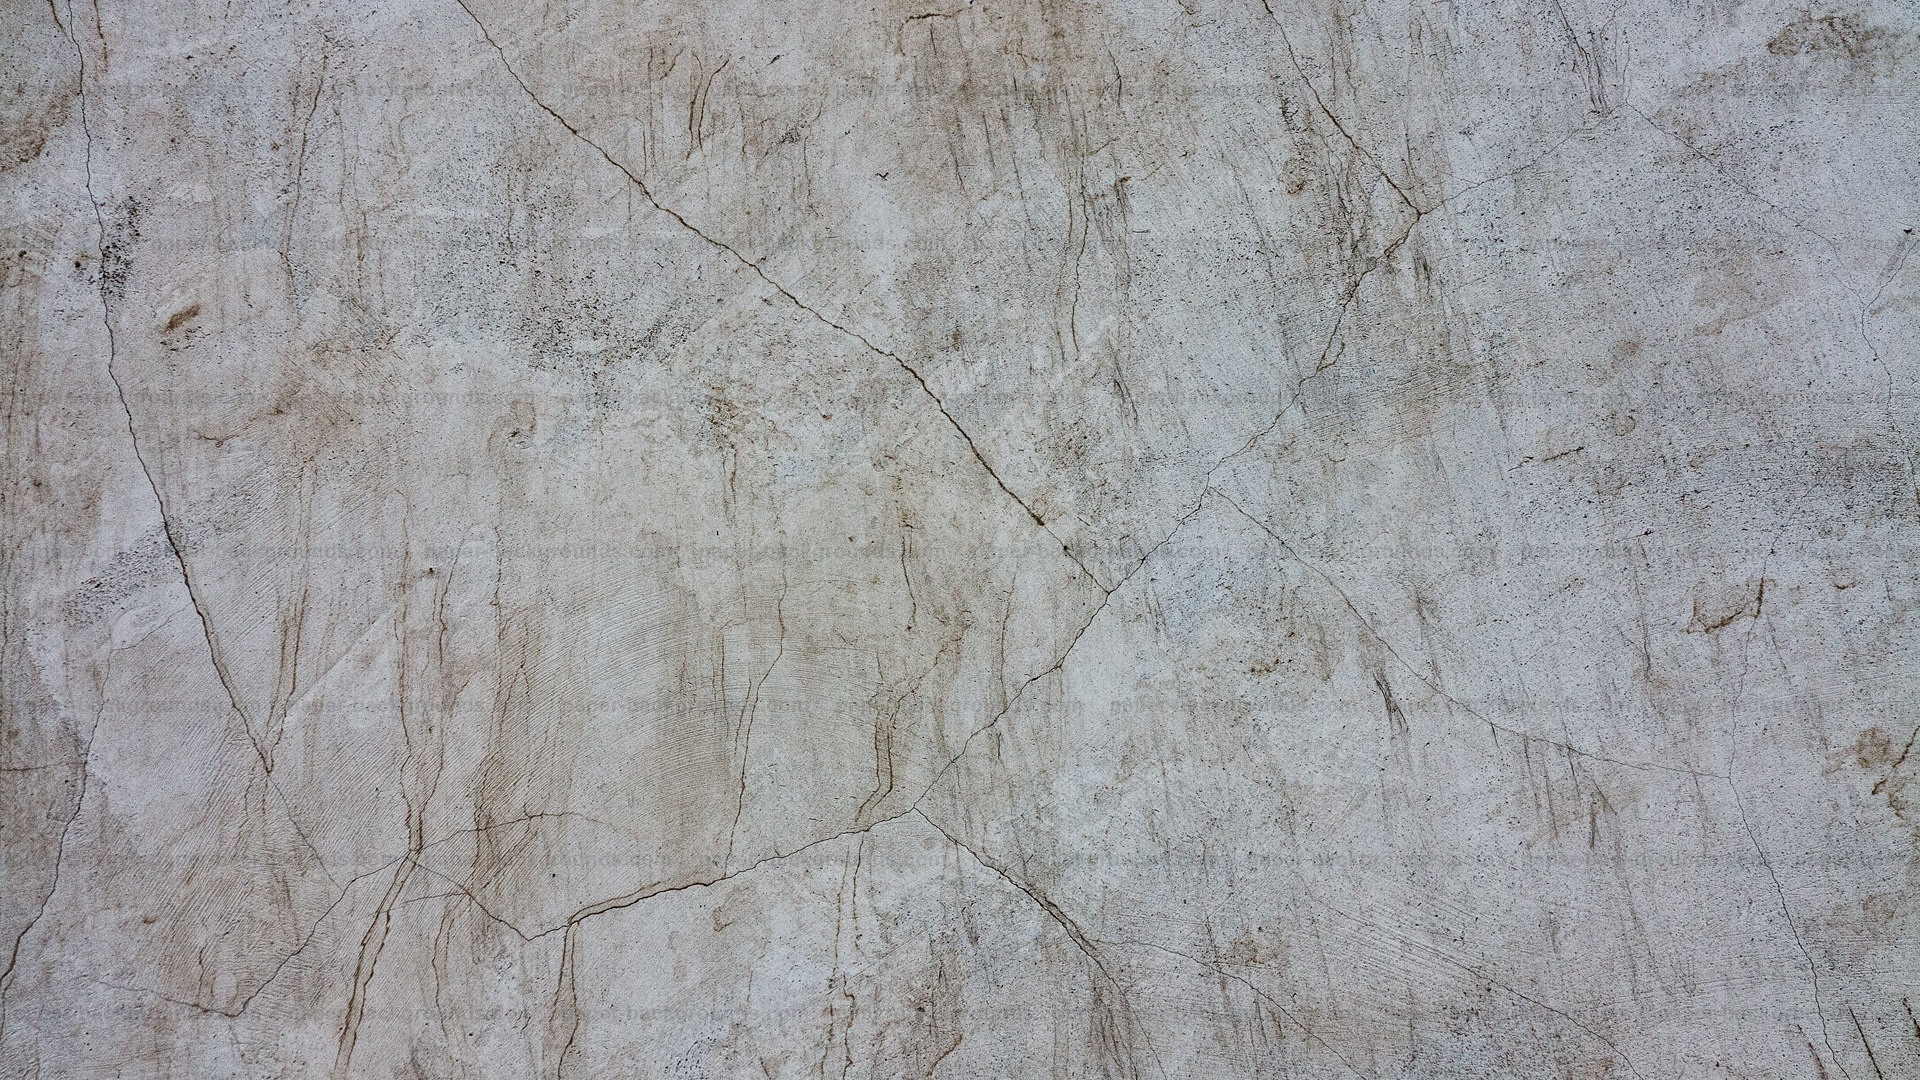 Cracked Dirty White Marble Wall Background, HD